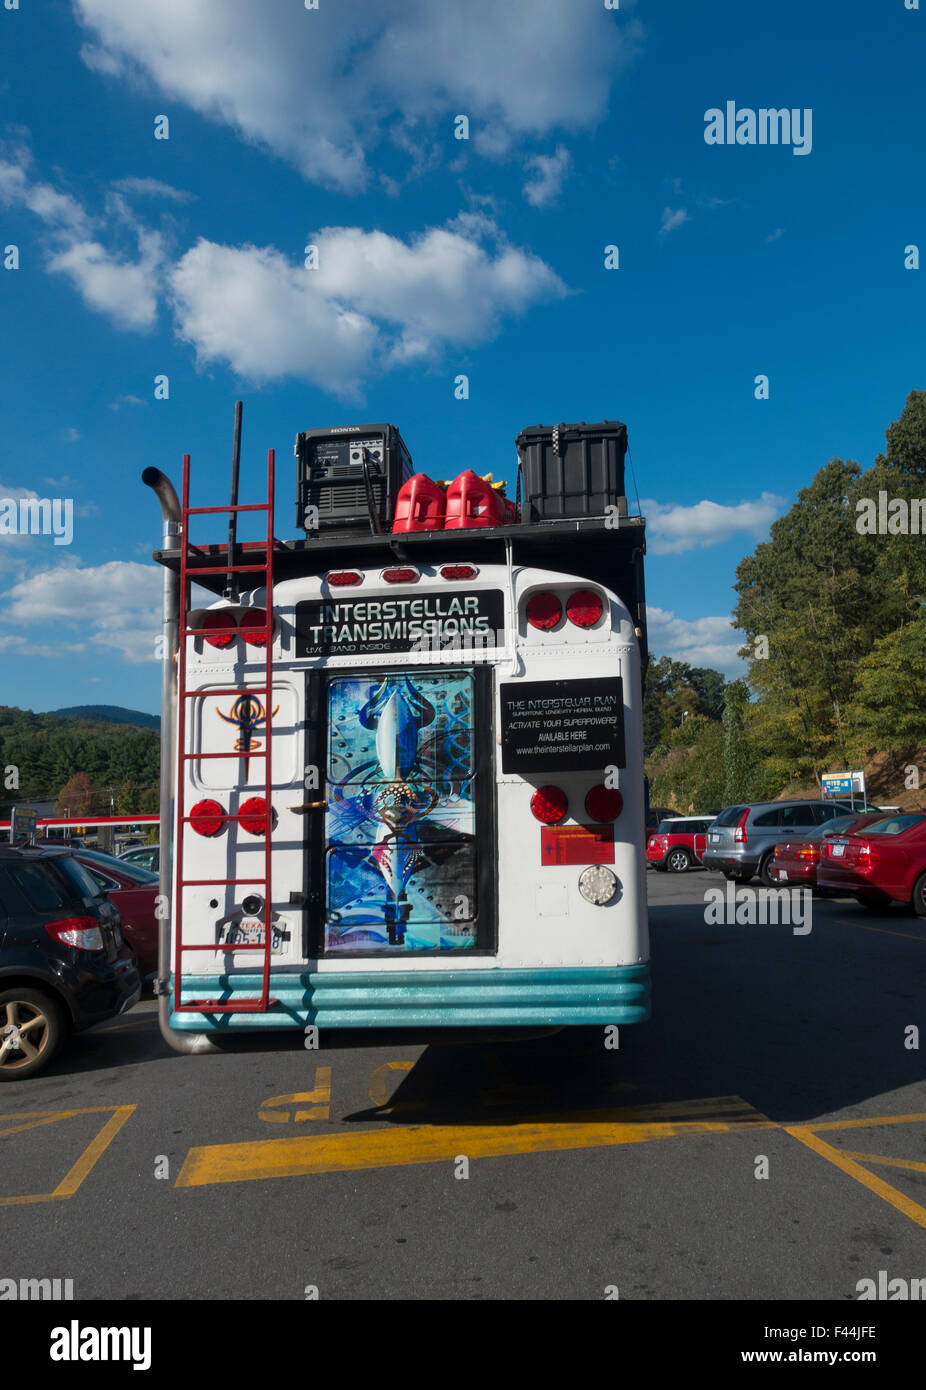 cult bus in truck stop - Stock Image